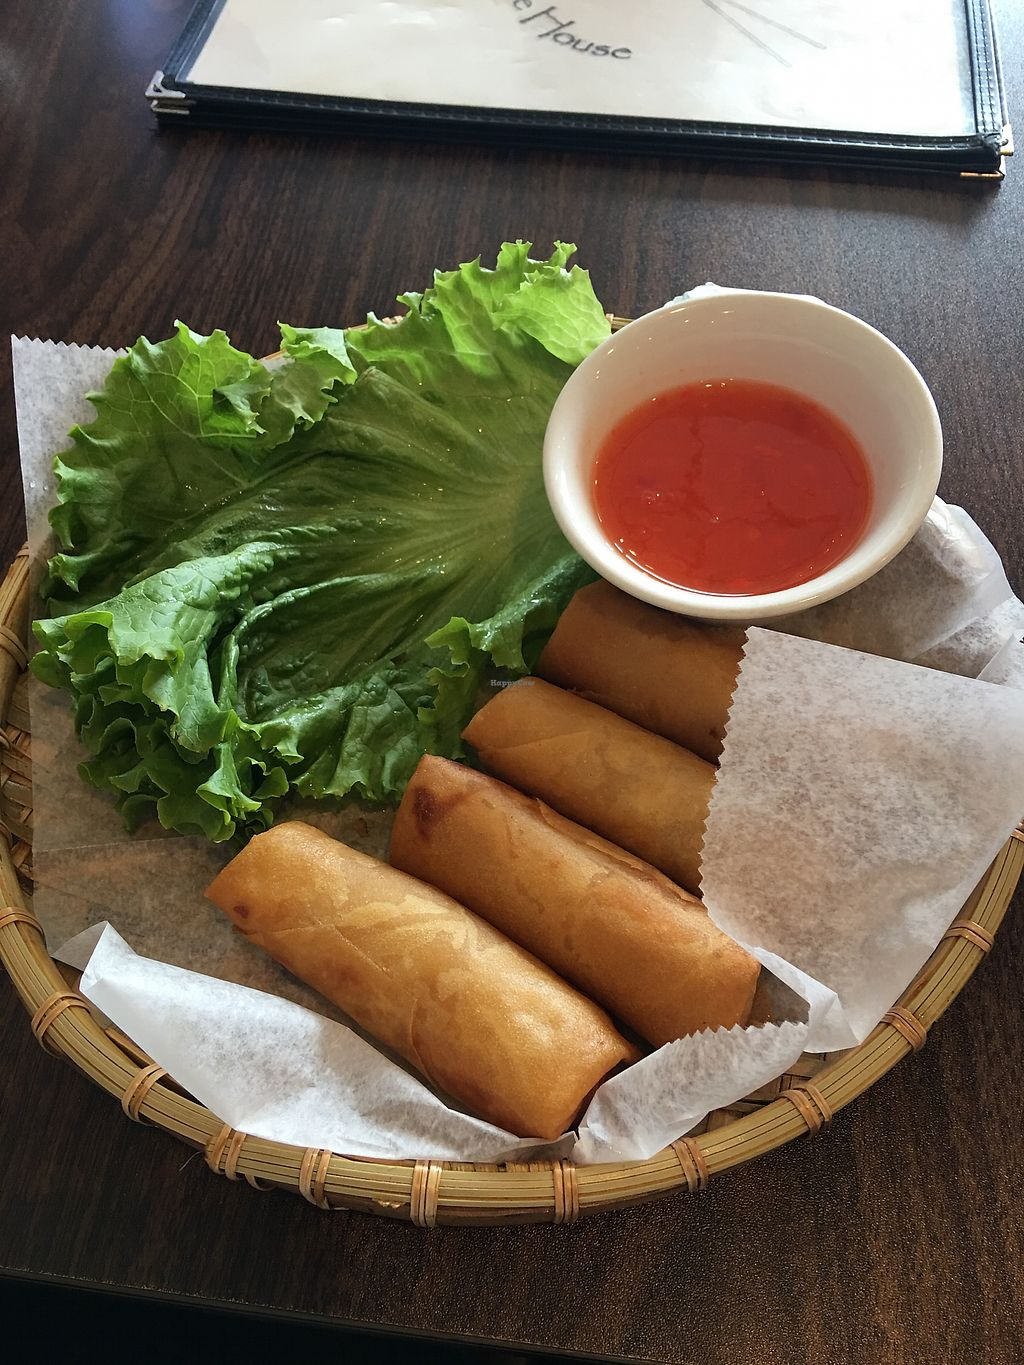 """Photo of Vietnamese Noodle House  by <a href=""""/members/profile/SuzieJoConstantin"""">SuzieJoConstantin</a> <br/>vegan spring rolls <br/> July 15, 2017  - <a href='/contact/abuse/image/96325/280731'>Report</a>"""